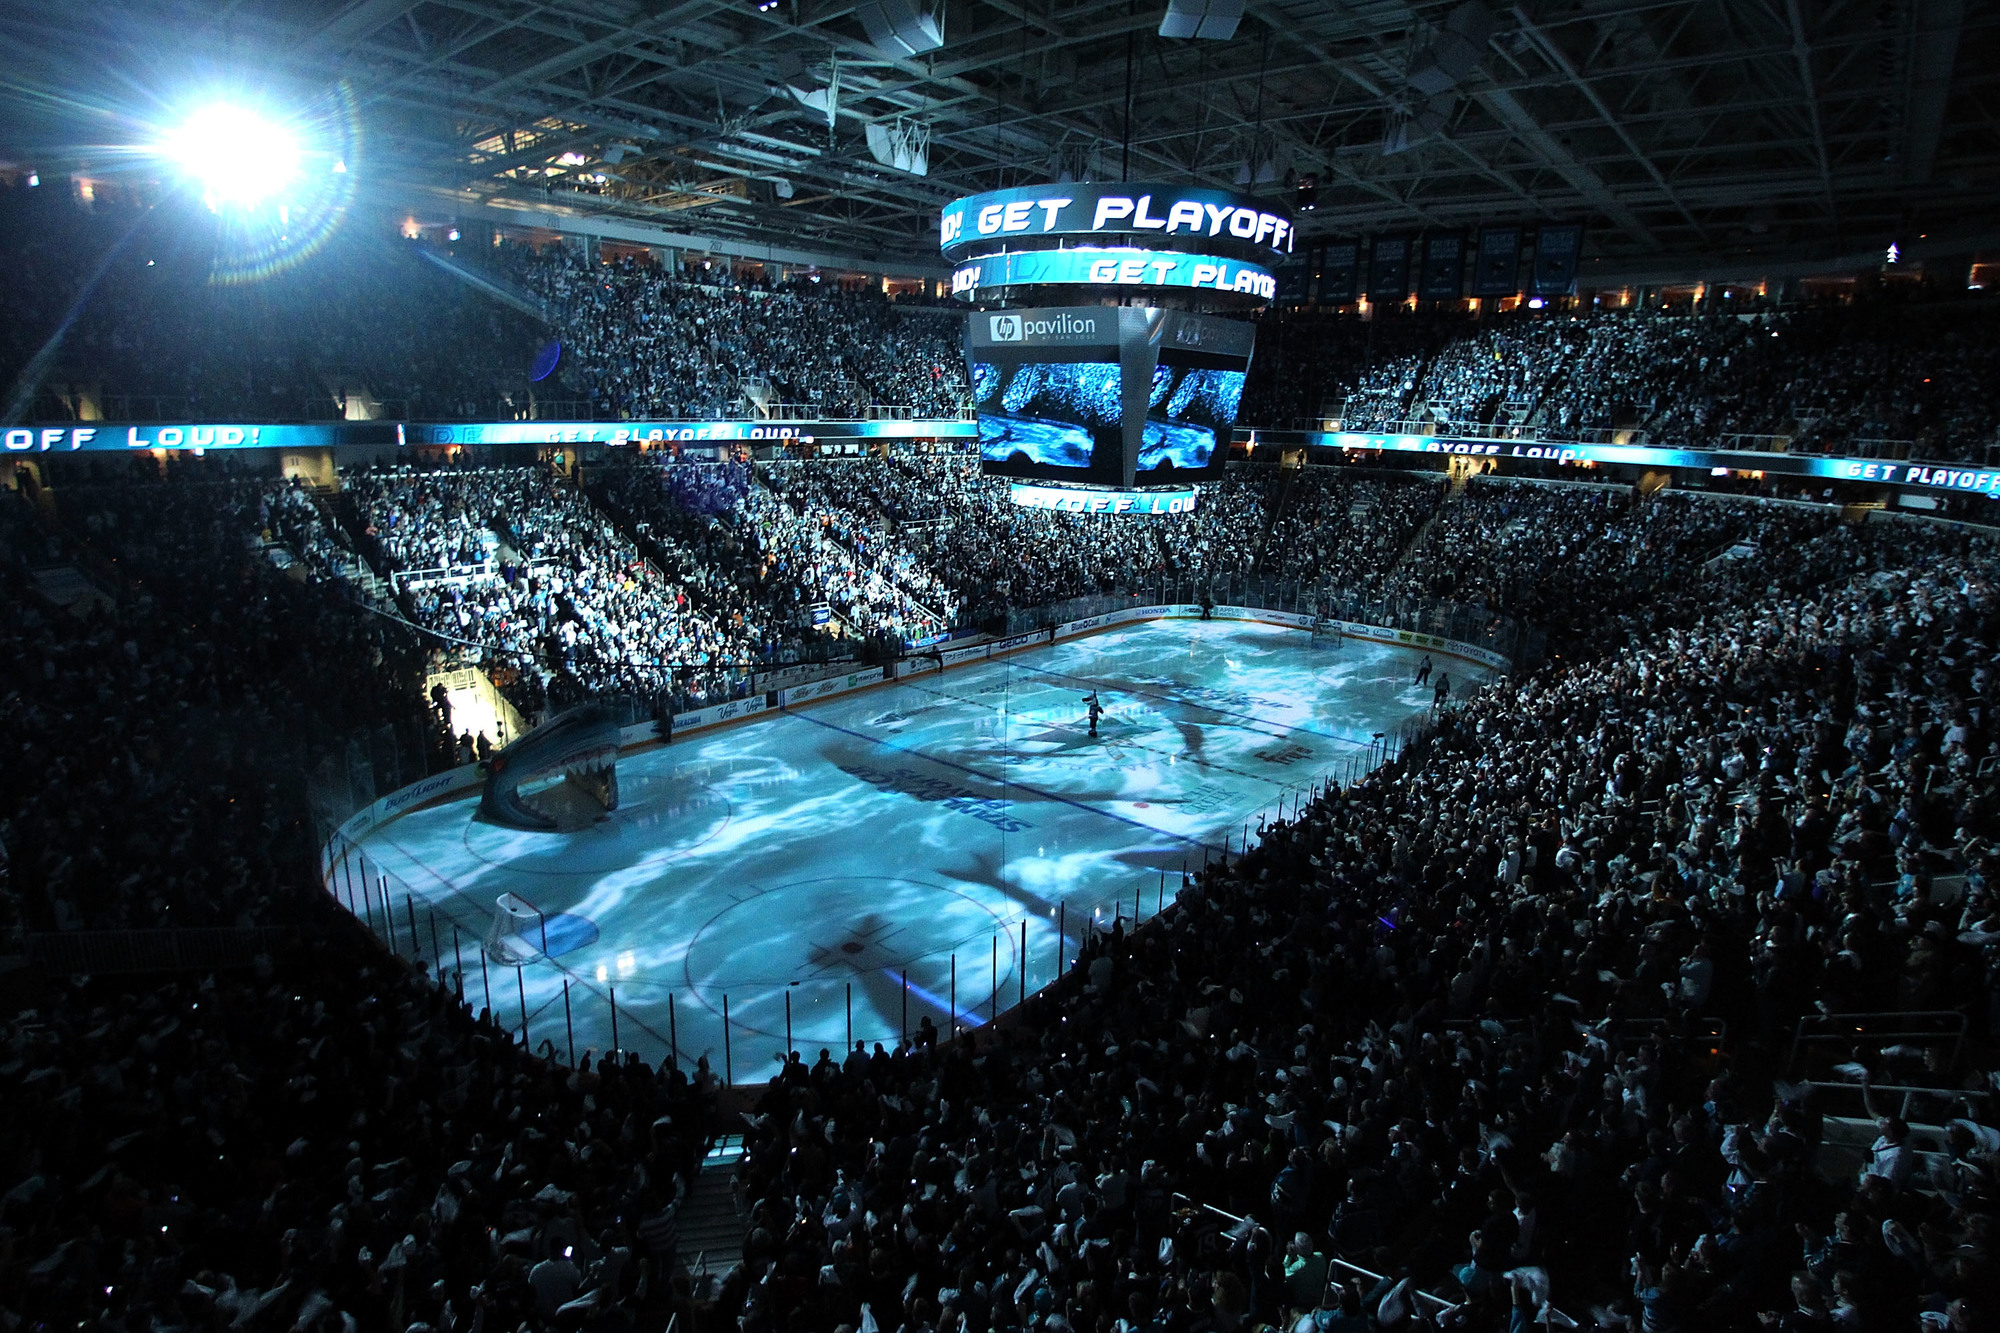 San Jose Sharks Expand Business Intelligence Efforts by Partnering with KORE Planning & Insights